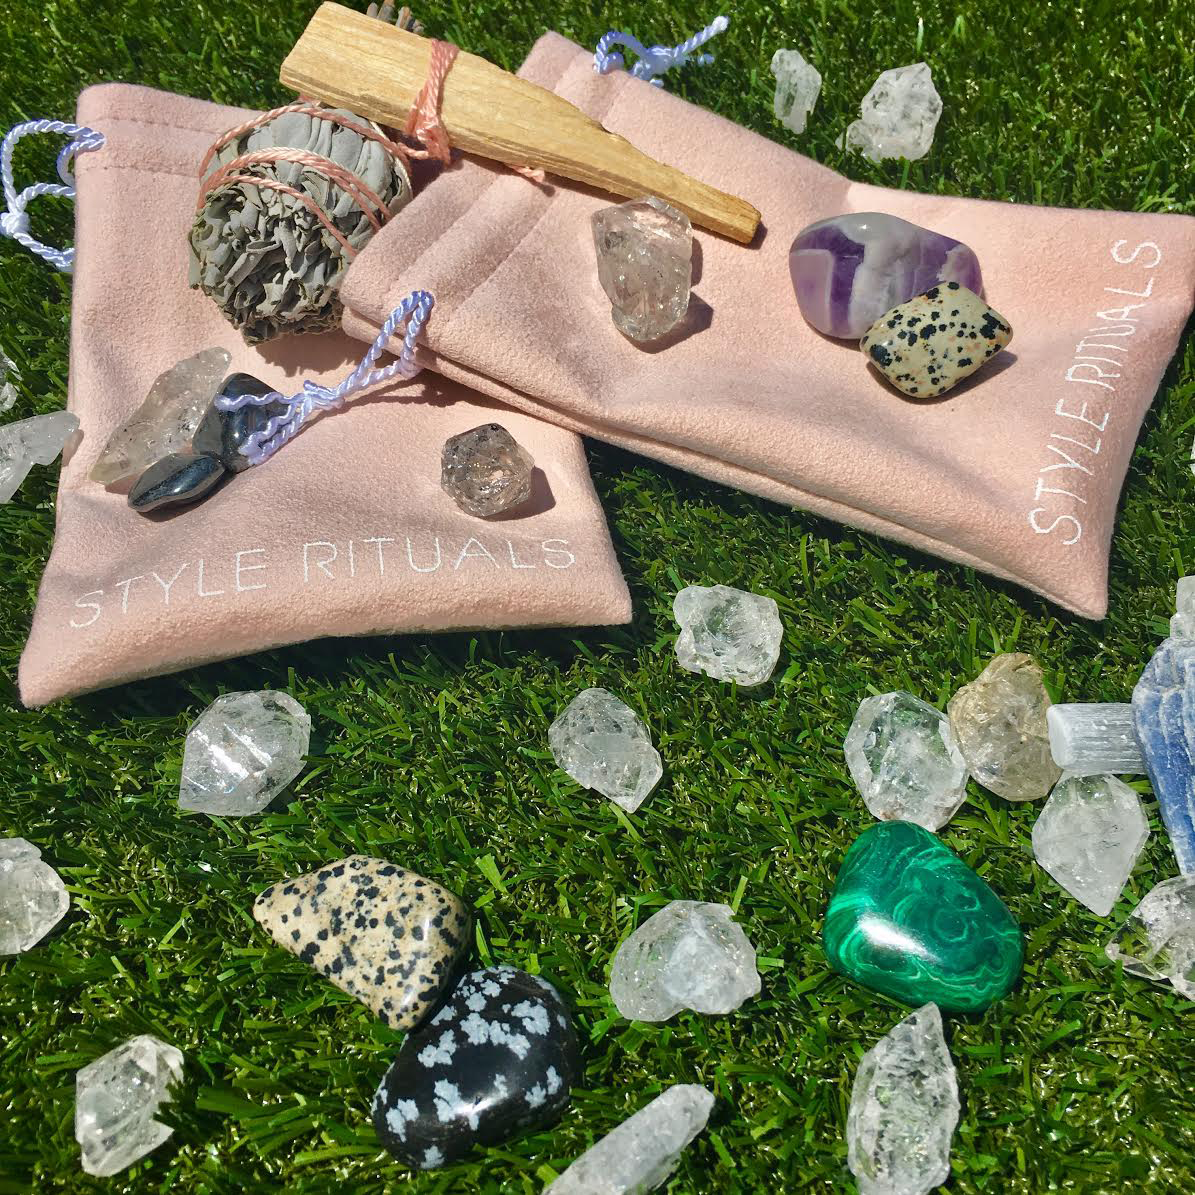 170927-goop-crystals-careers-colleen-mccann-3